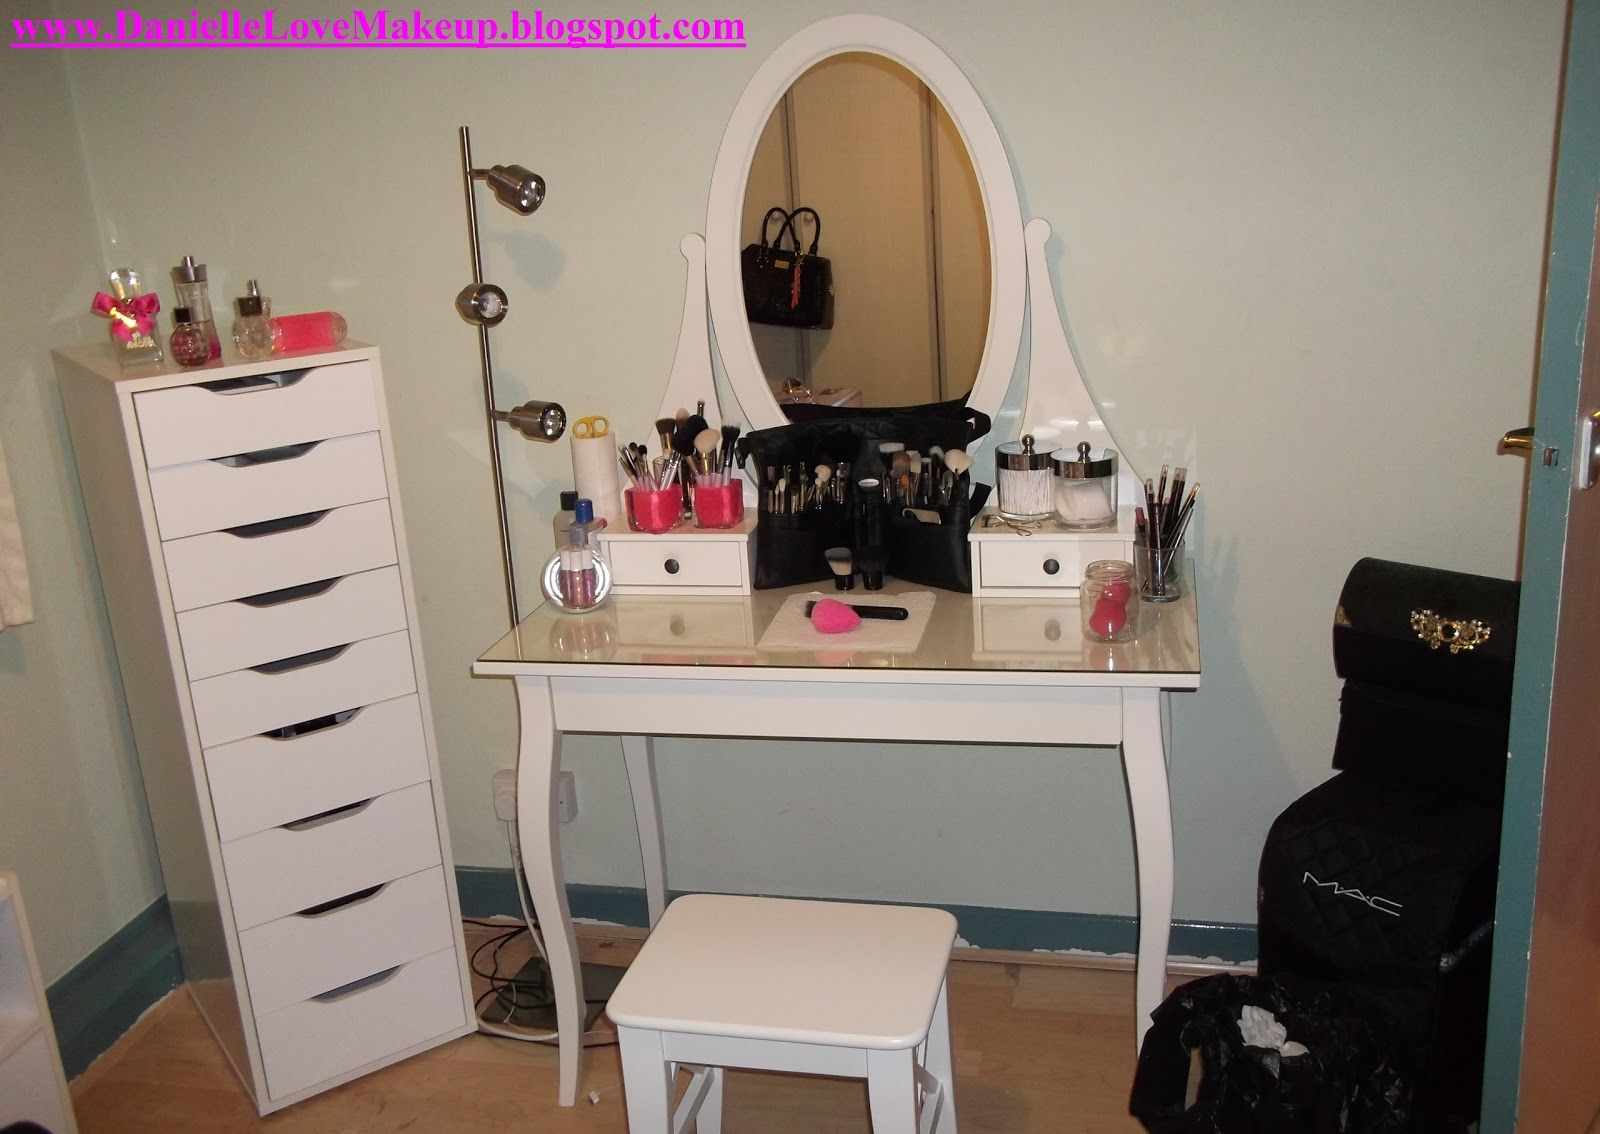 ikea dressing table hemnes google search home ideas and colors pinterest ikea dressing. Black Bedroom Furniture Sets. Home Design Ideas